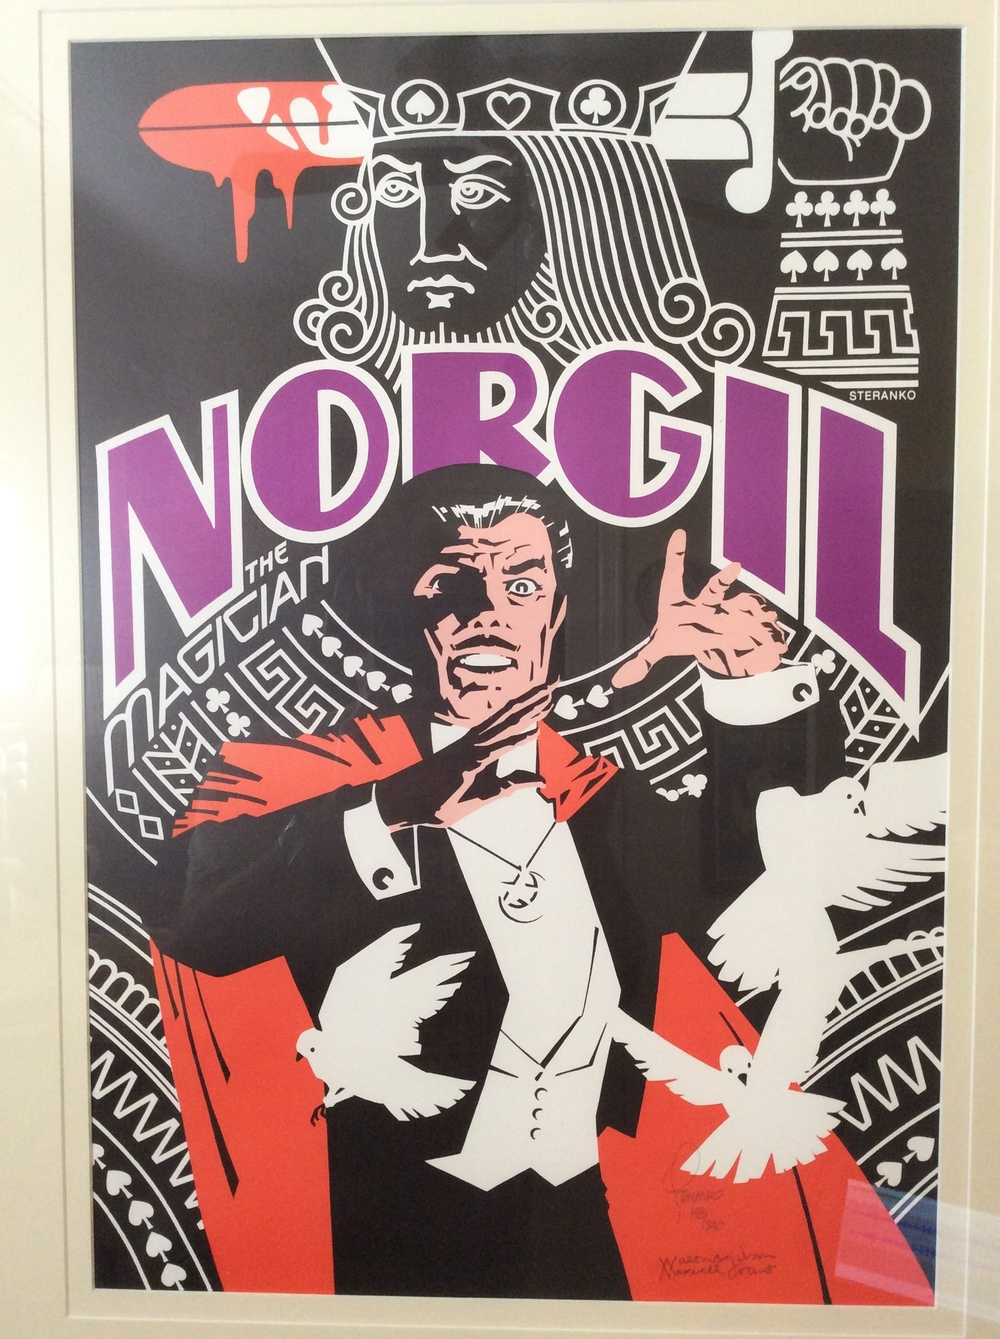 Norgil Poster Talked about during the podcast